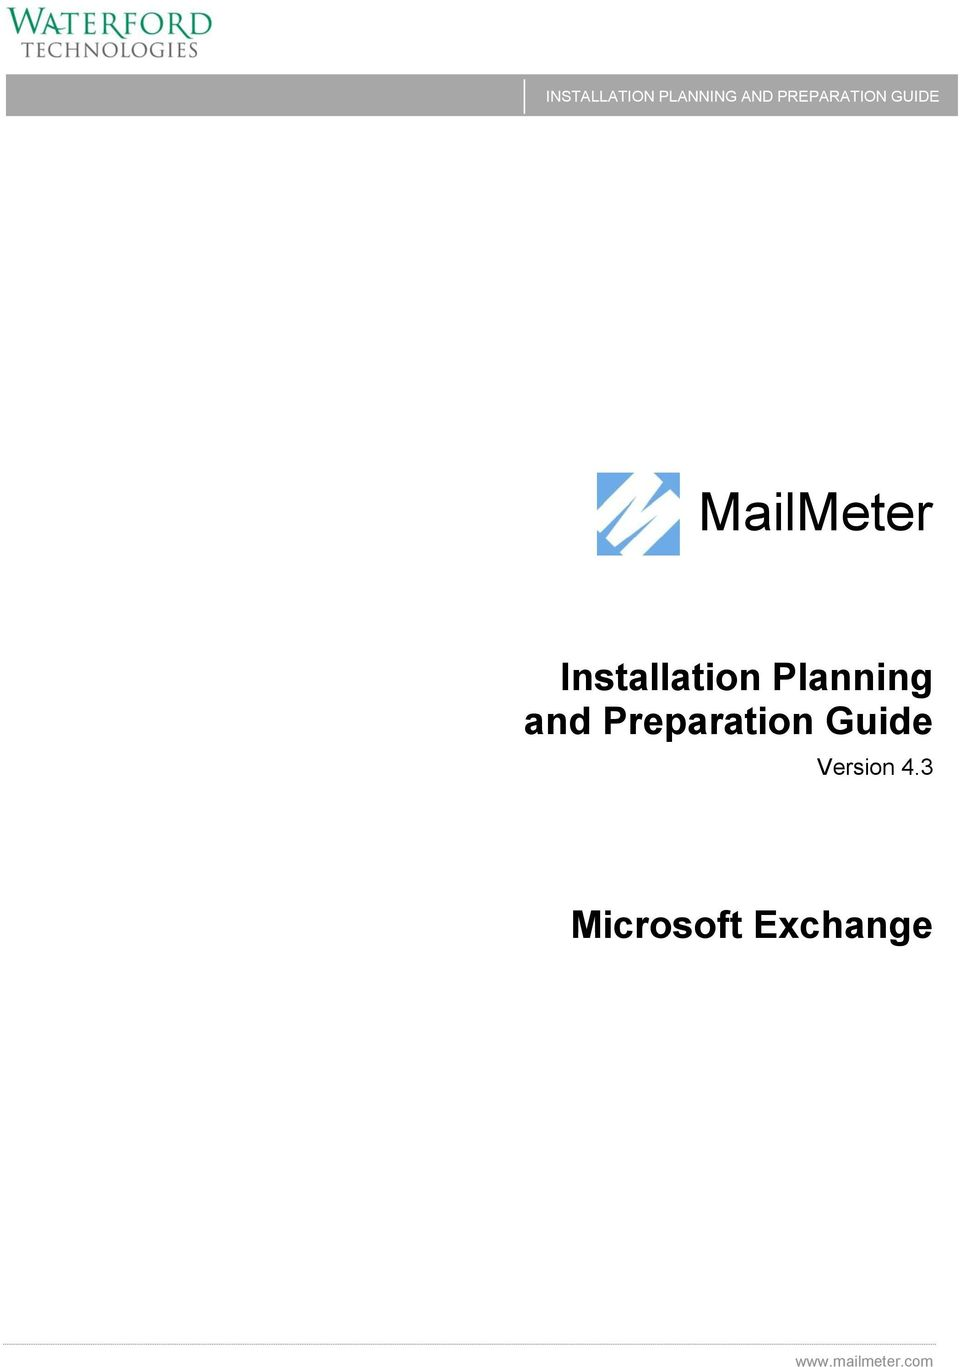 Installation Planning and